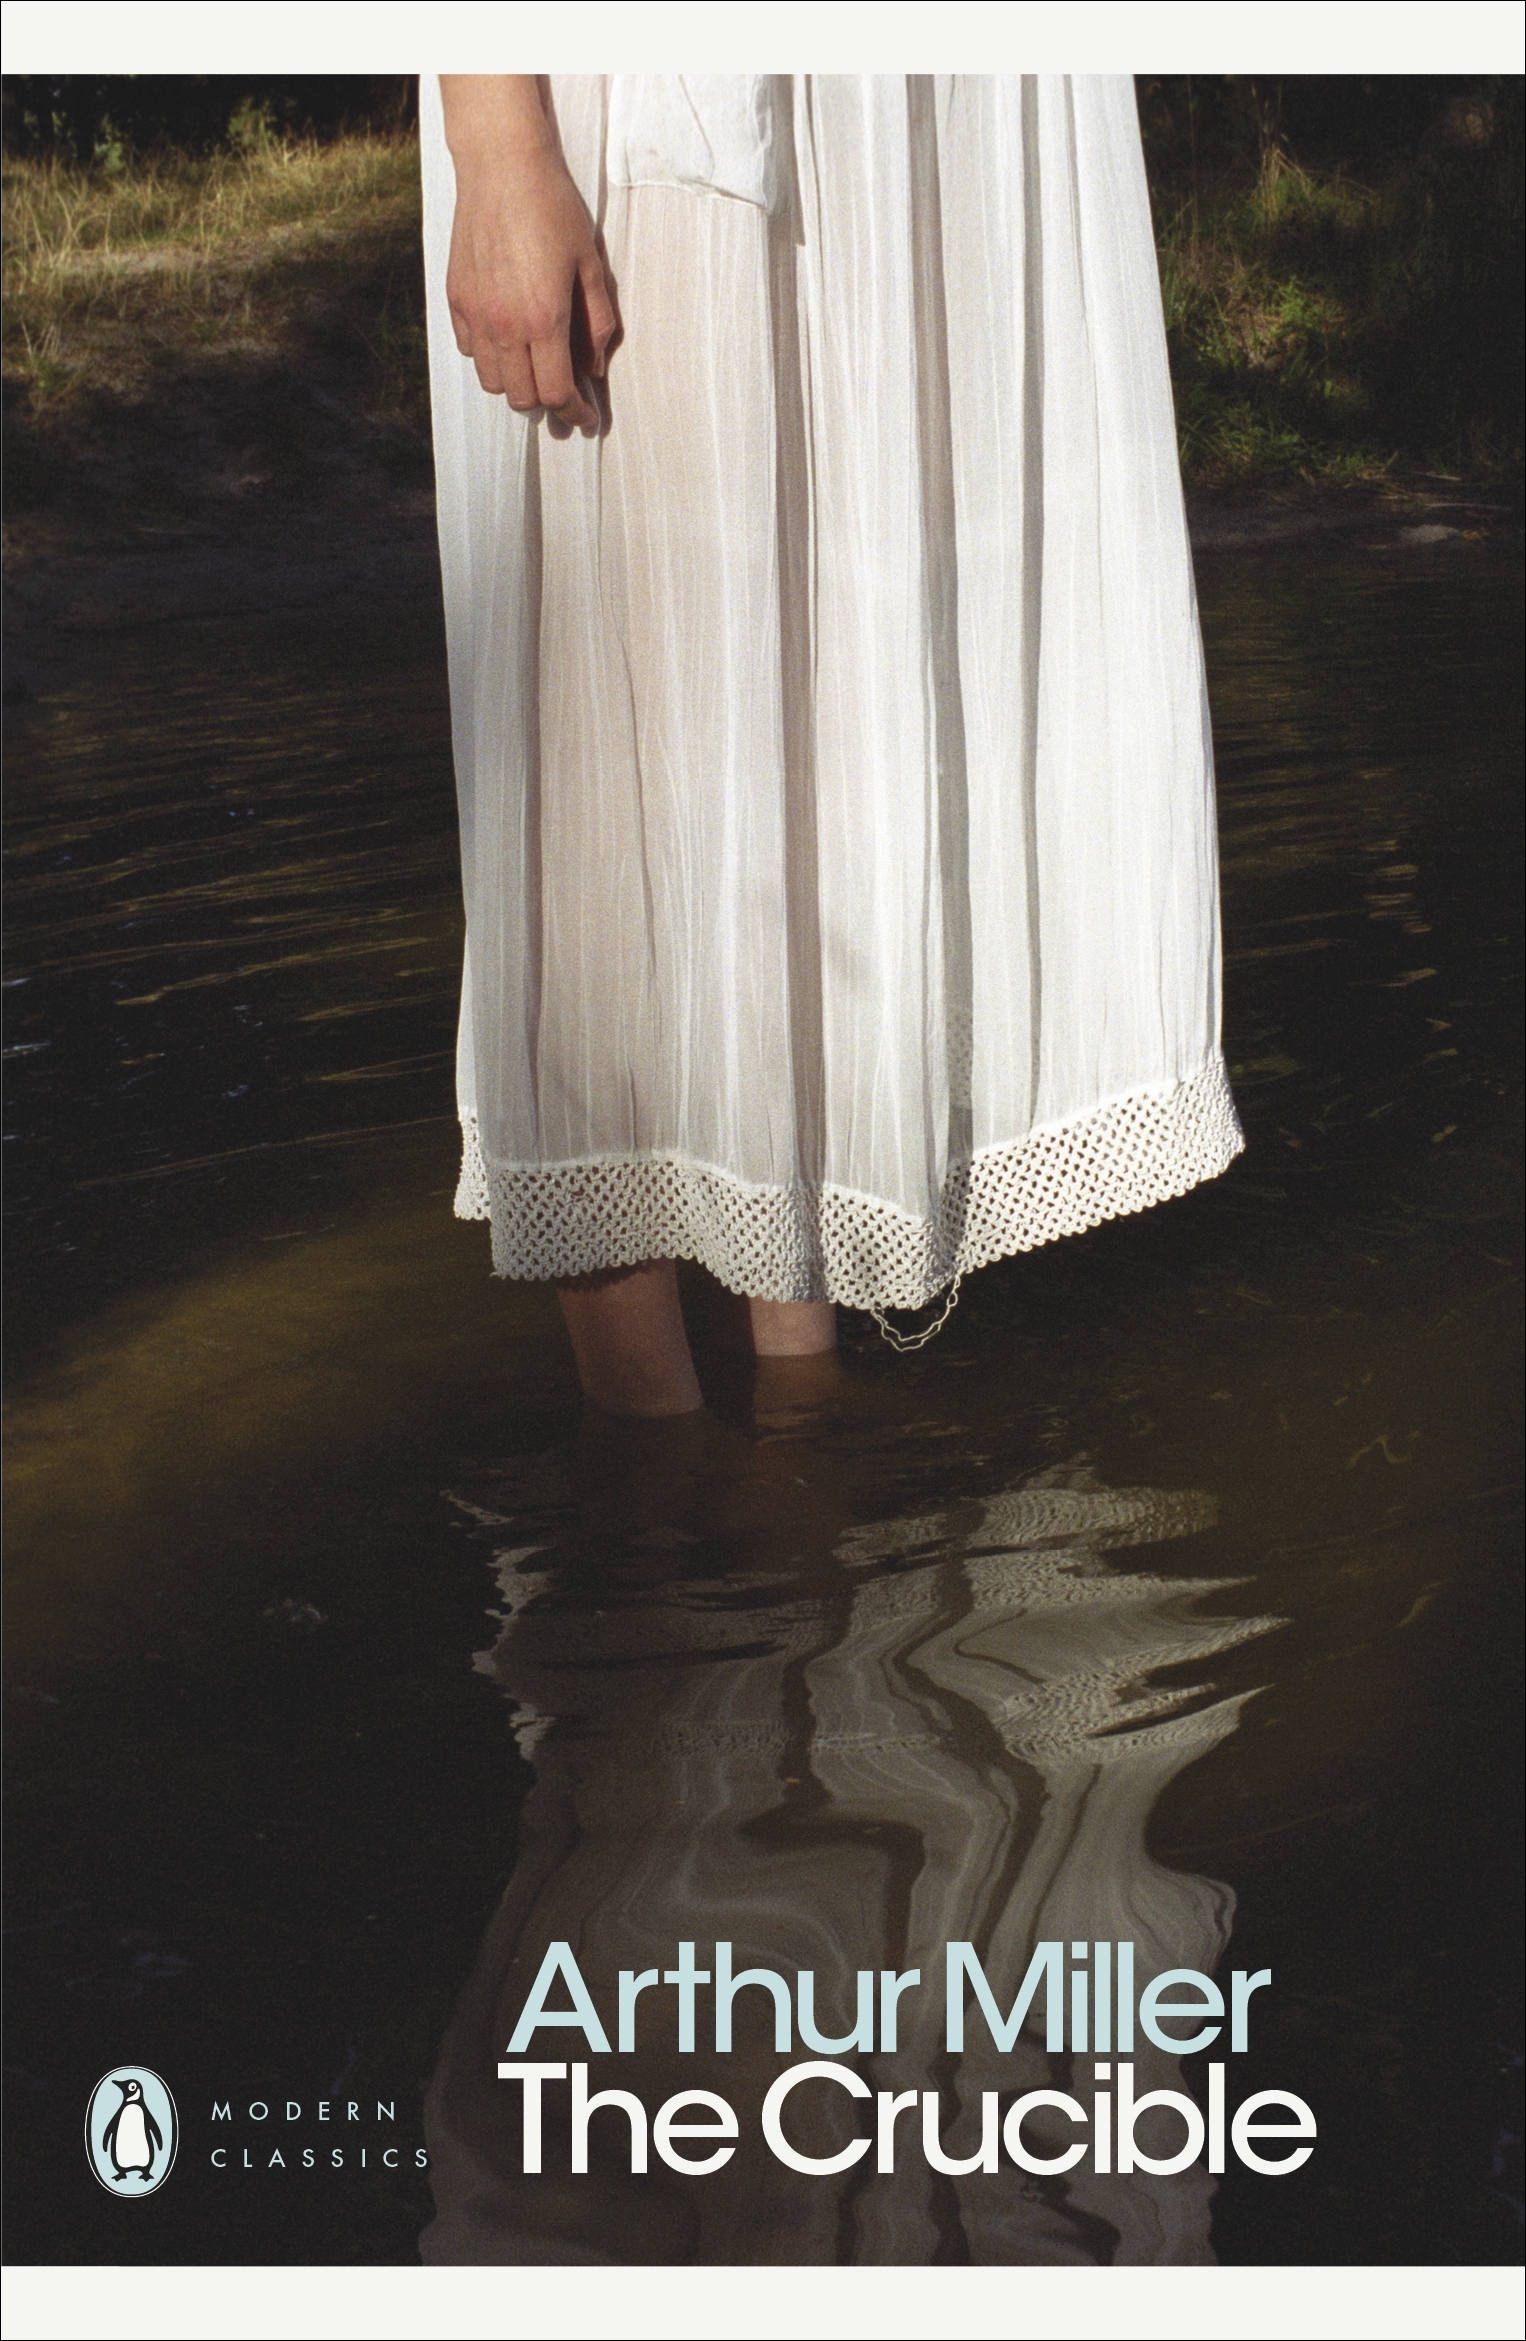 the crucible in relation to modern The general outline of events in the crucible corresponds to what happened in salem of 1692, but miller's characters are often composites furthermore, his central plot device—the affair between abigail williams and john proctor—has no grounding in fact (proctor was over sixty at the time of the trials, while abigail was only eleven.